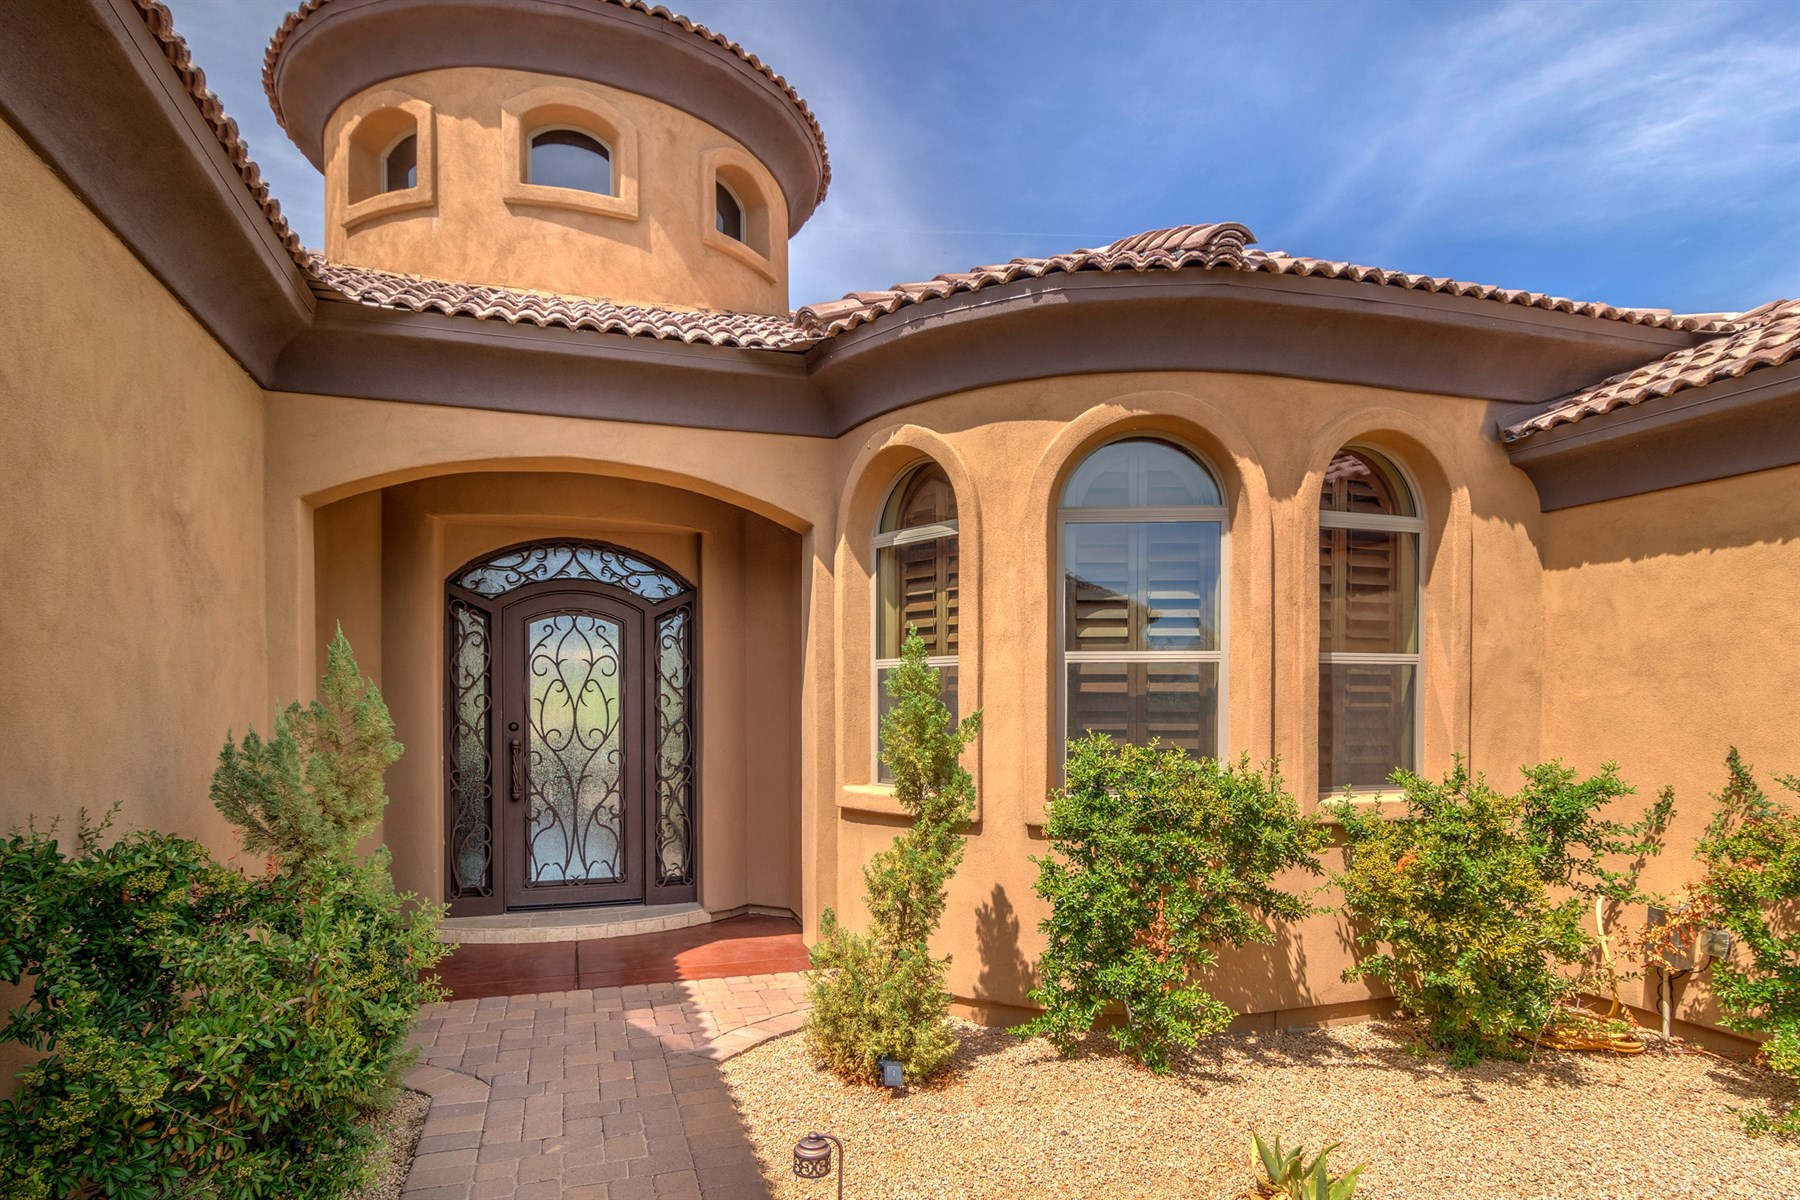 Property For Sale at Beautiful 4,000 SF Home in Mirabel Villge - North Scottsdale